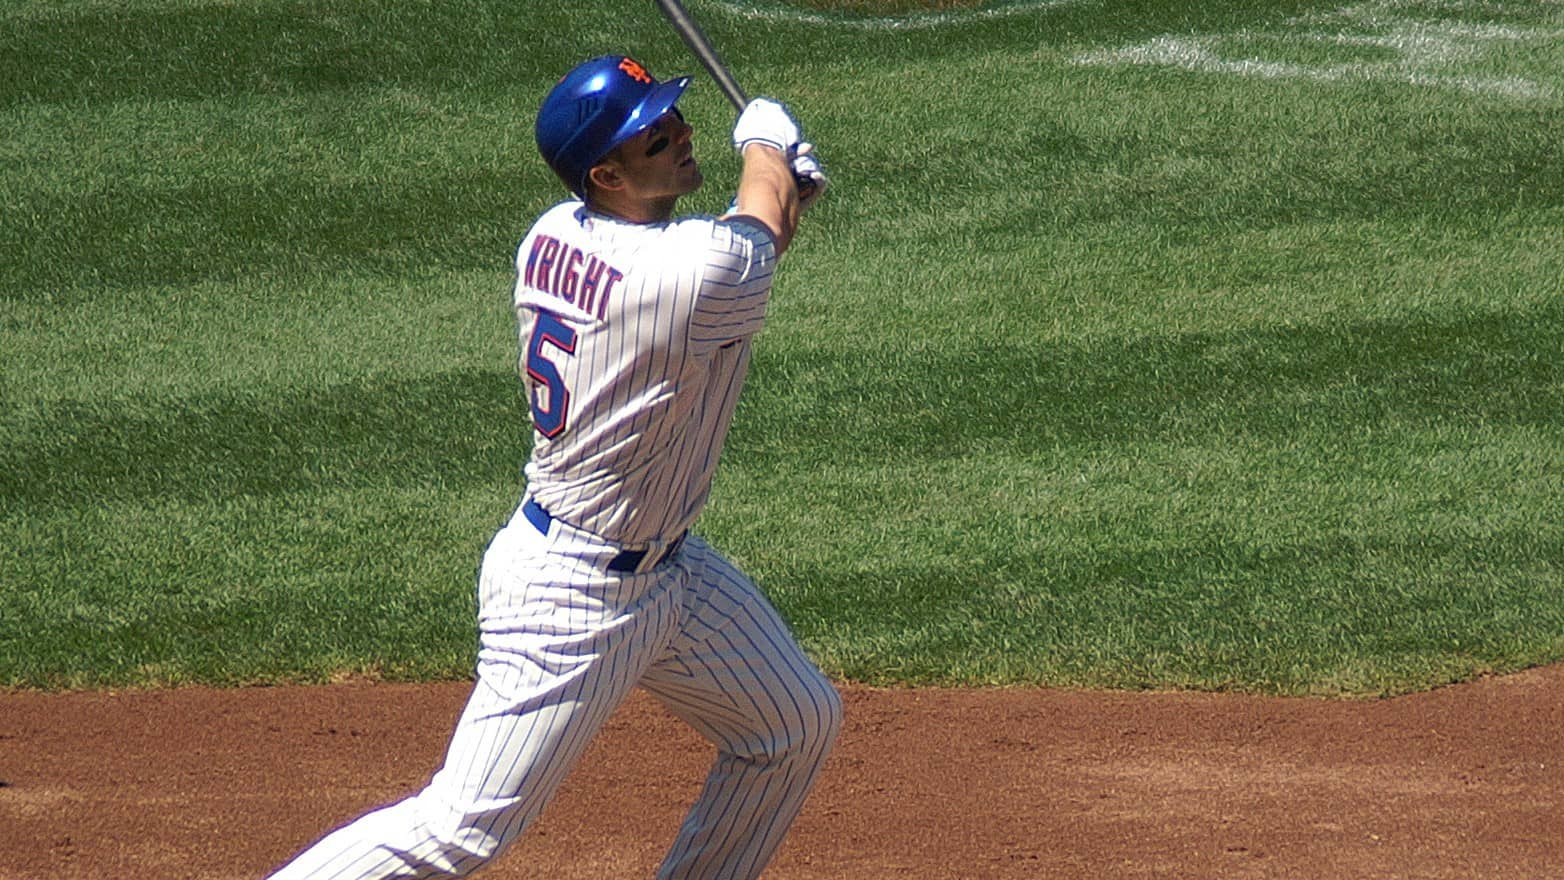 One fan's list of top David Wright moments